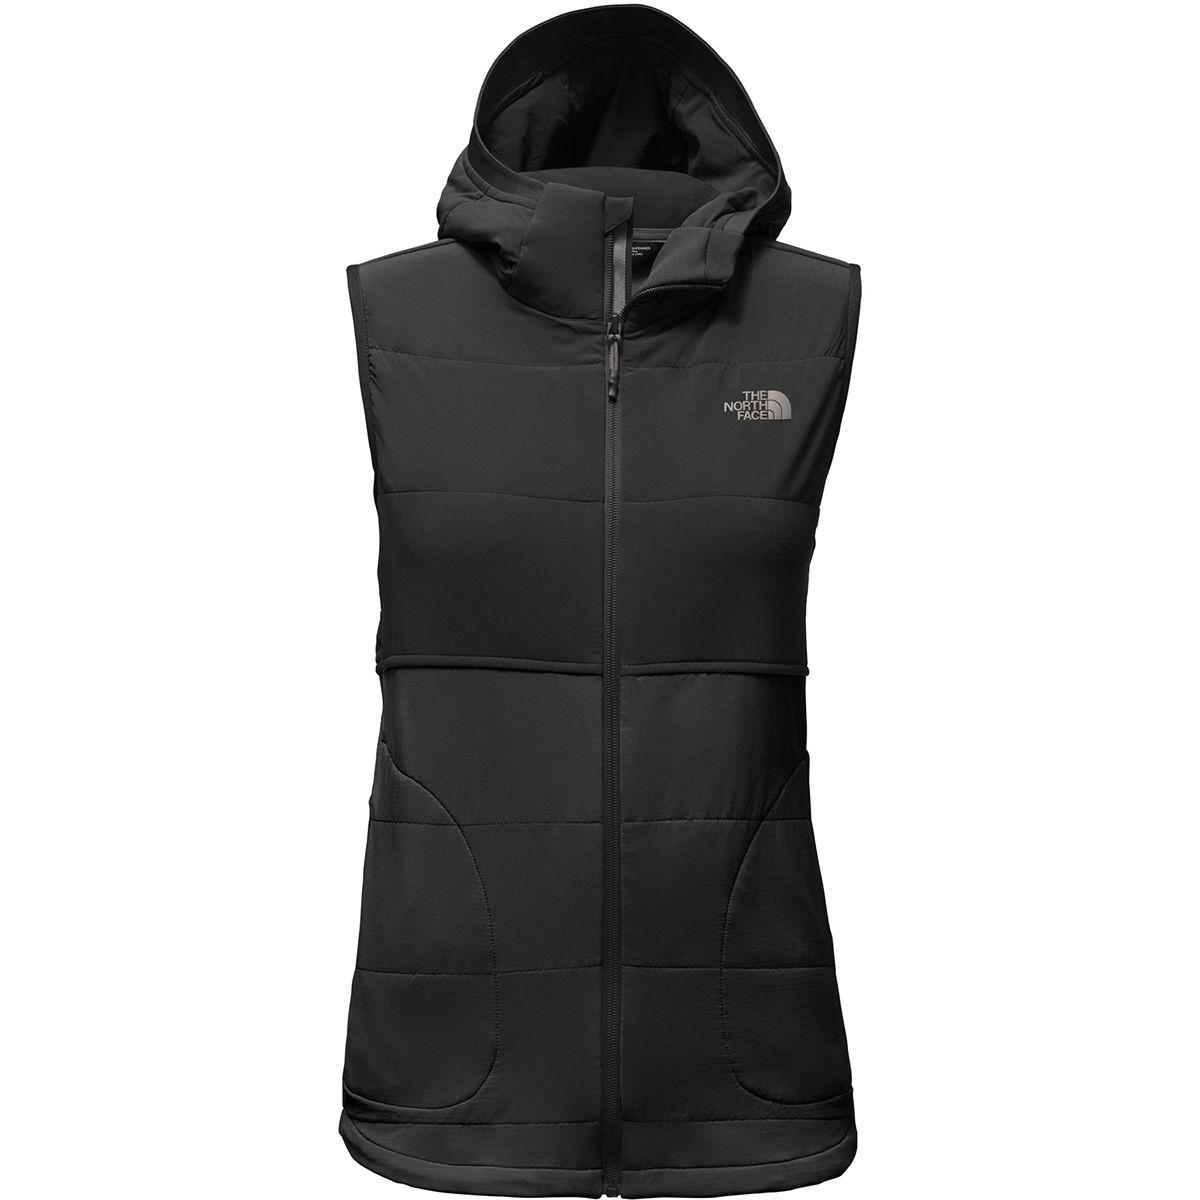 a7e26dd690d6 Lyst - The North Face Mountain Sweatshirt Hooded Vest in Black